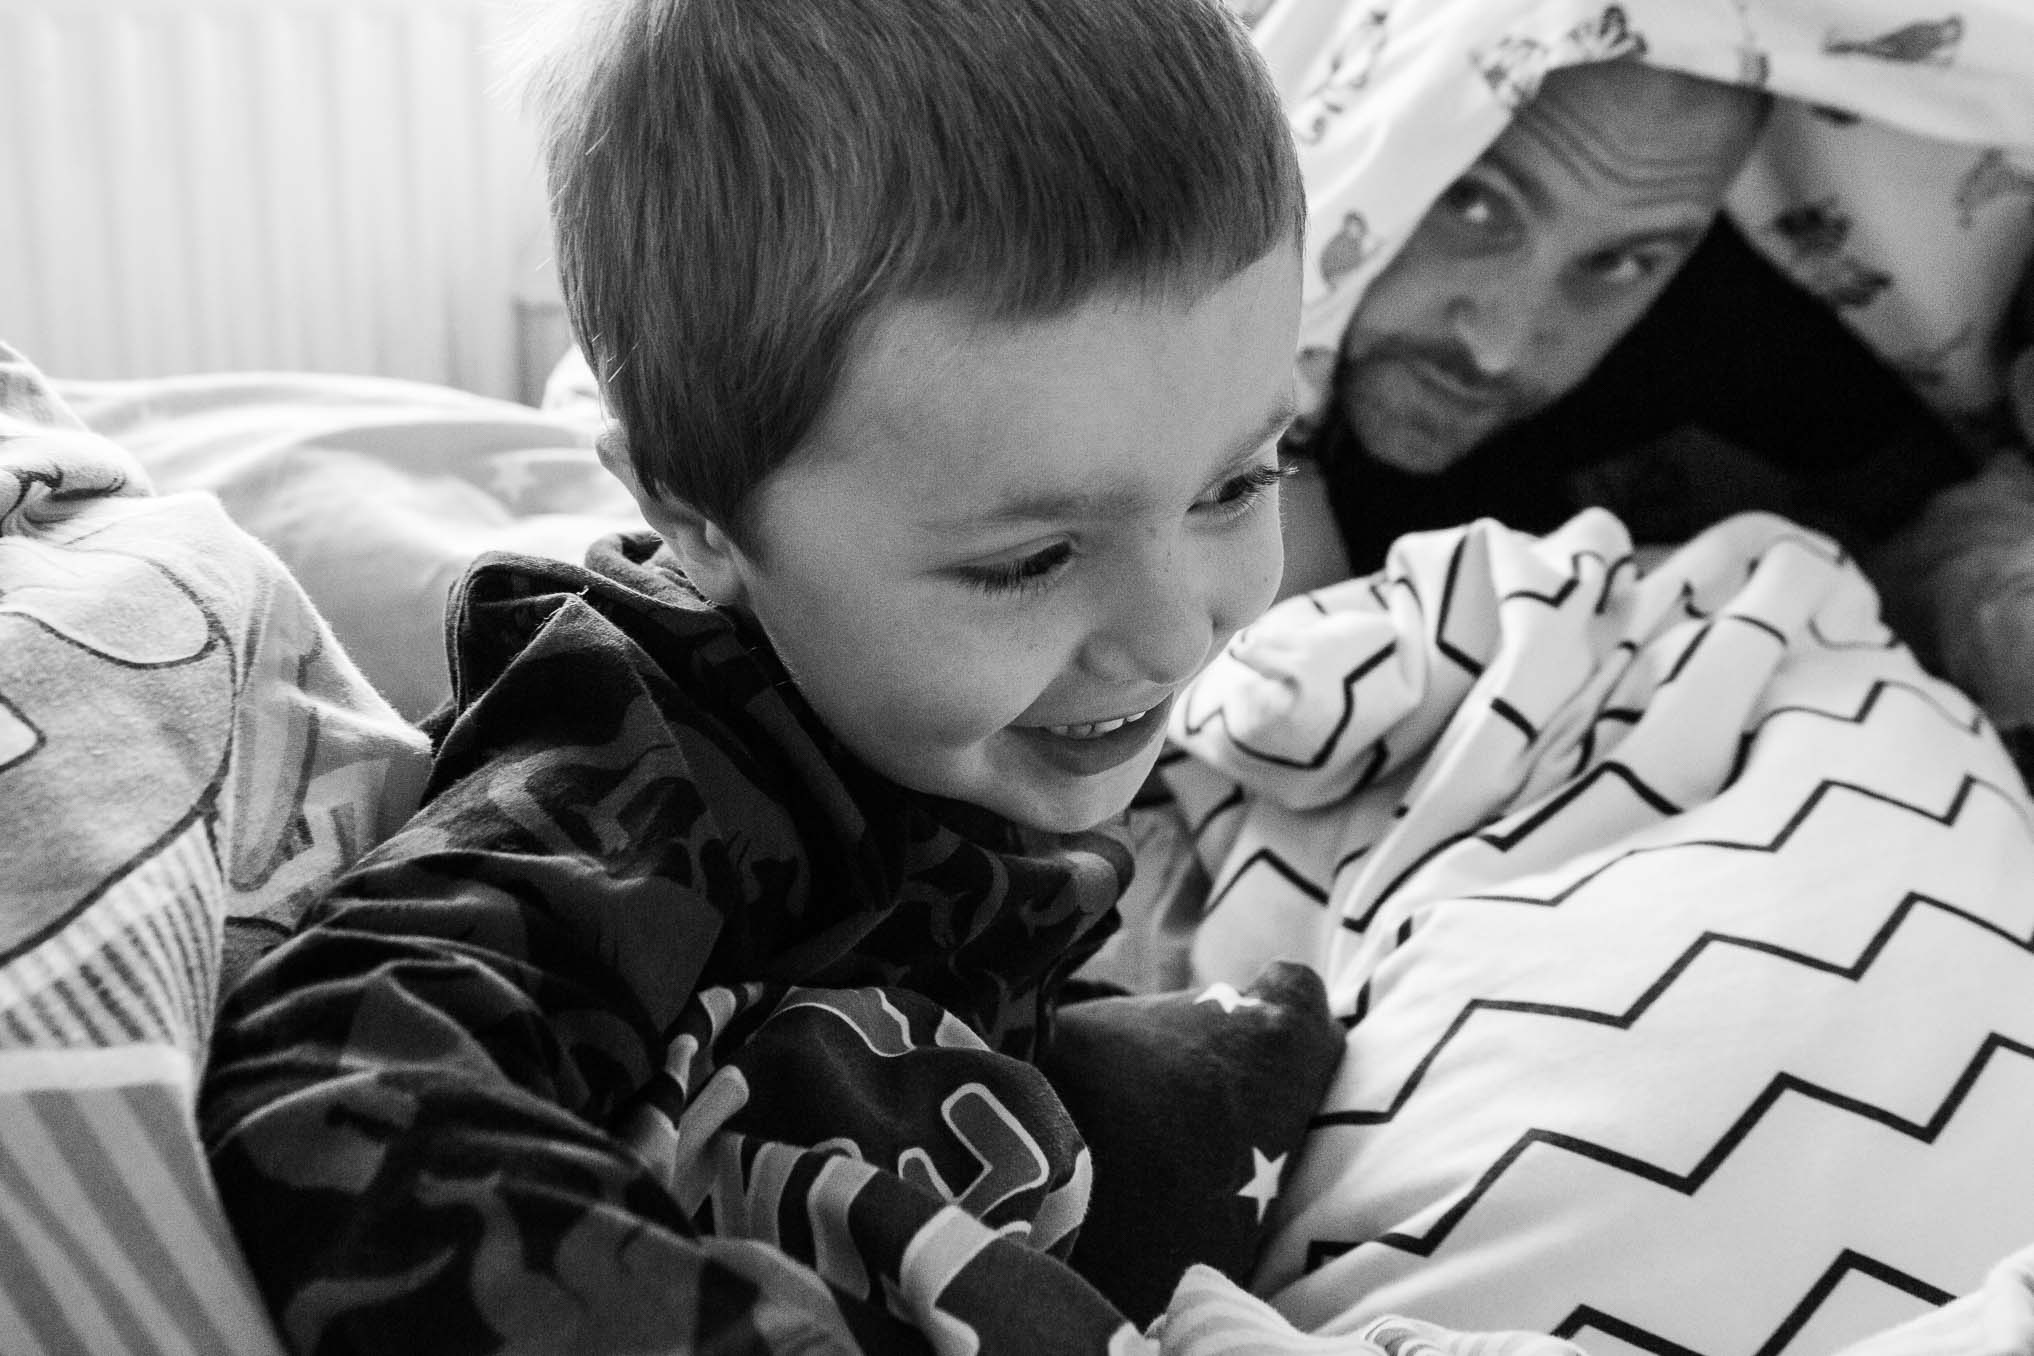 Little boy in foreground with Dad playing boo under duvet in background